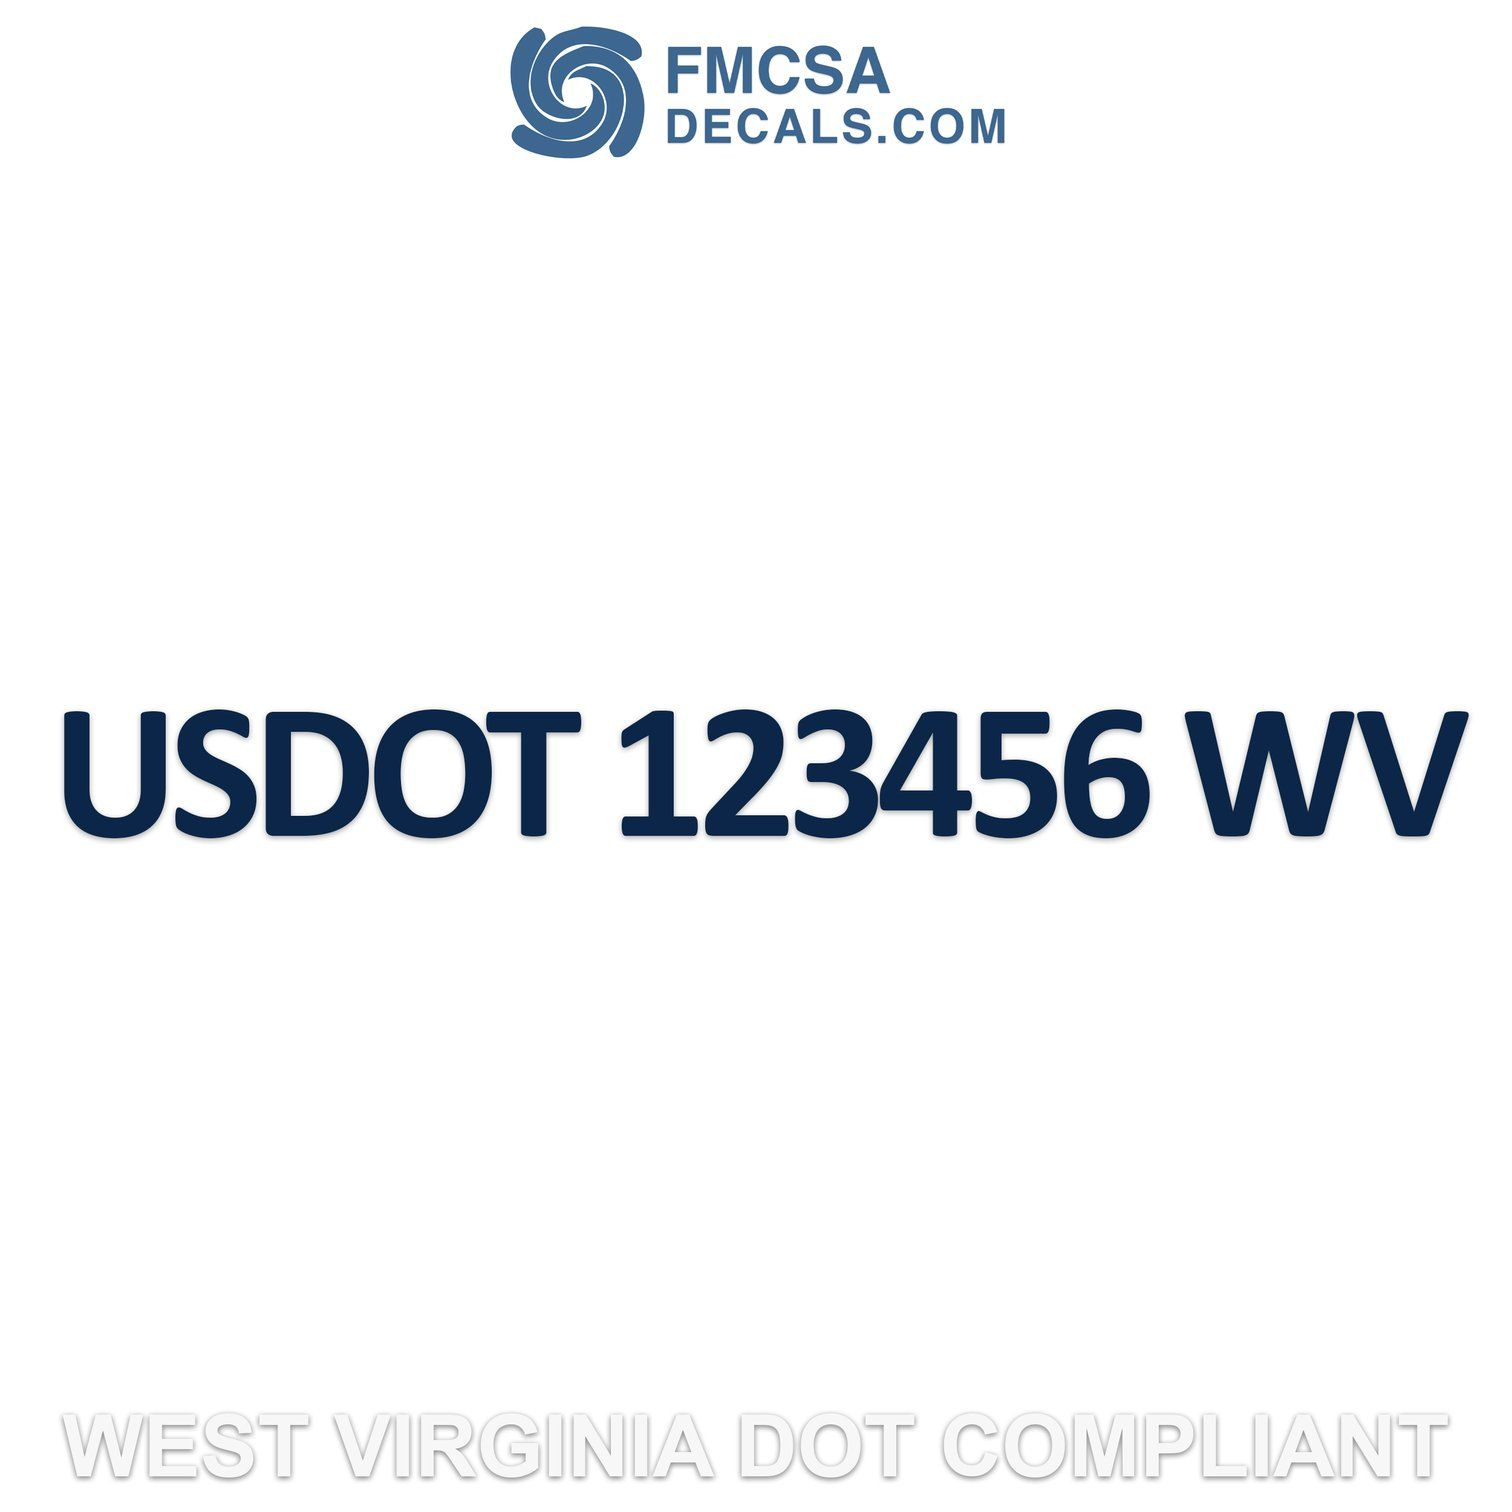 USDOT Number Sticker Decal Wyoming Set of 2